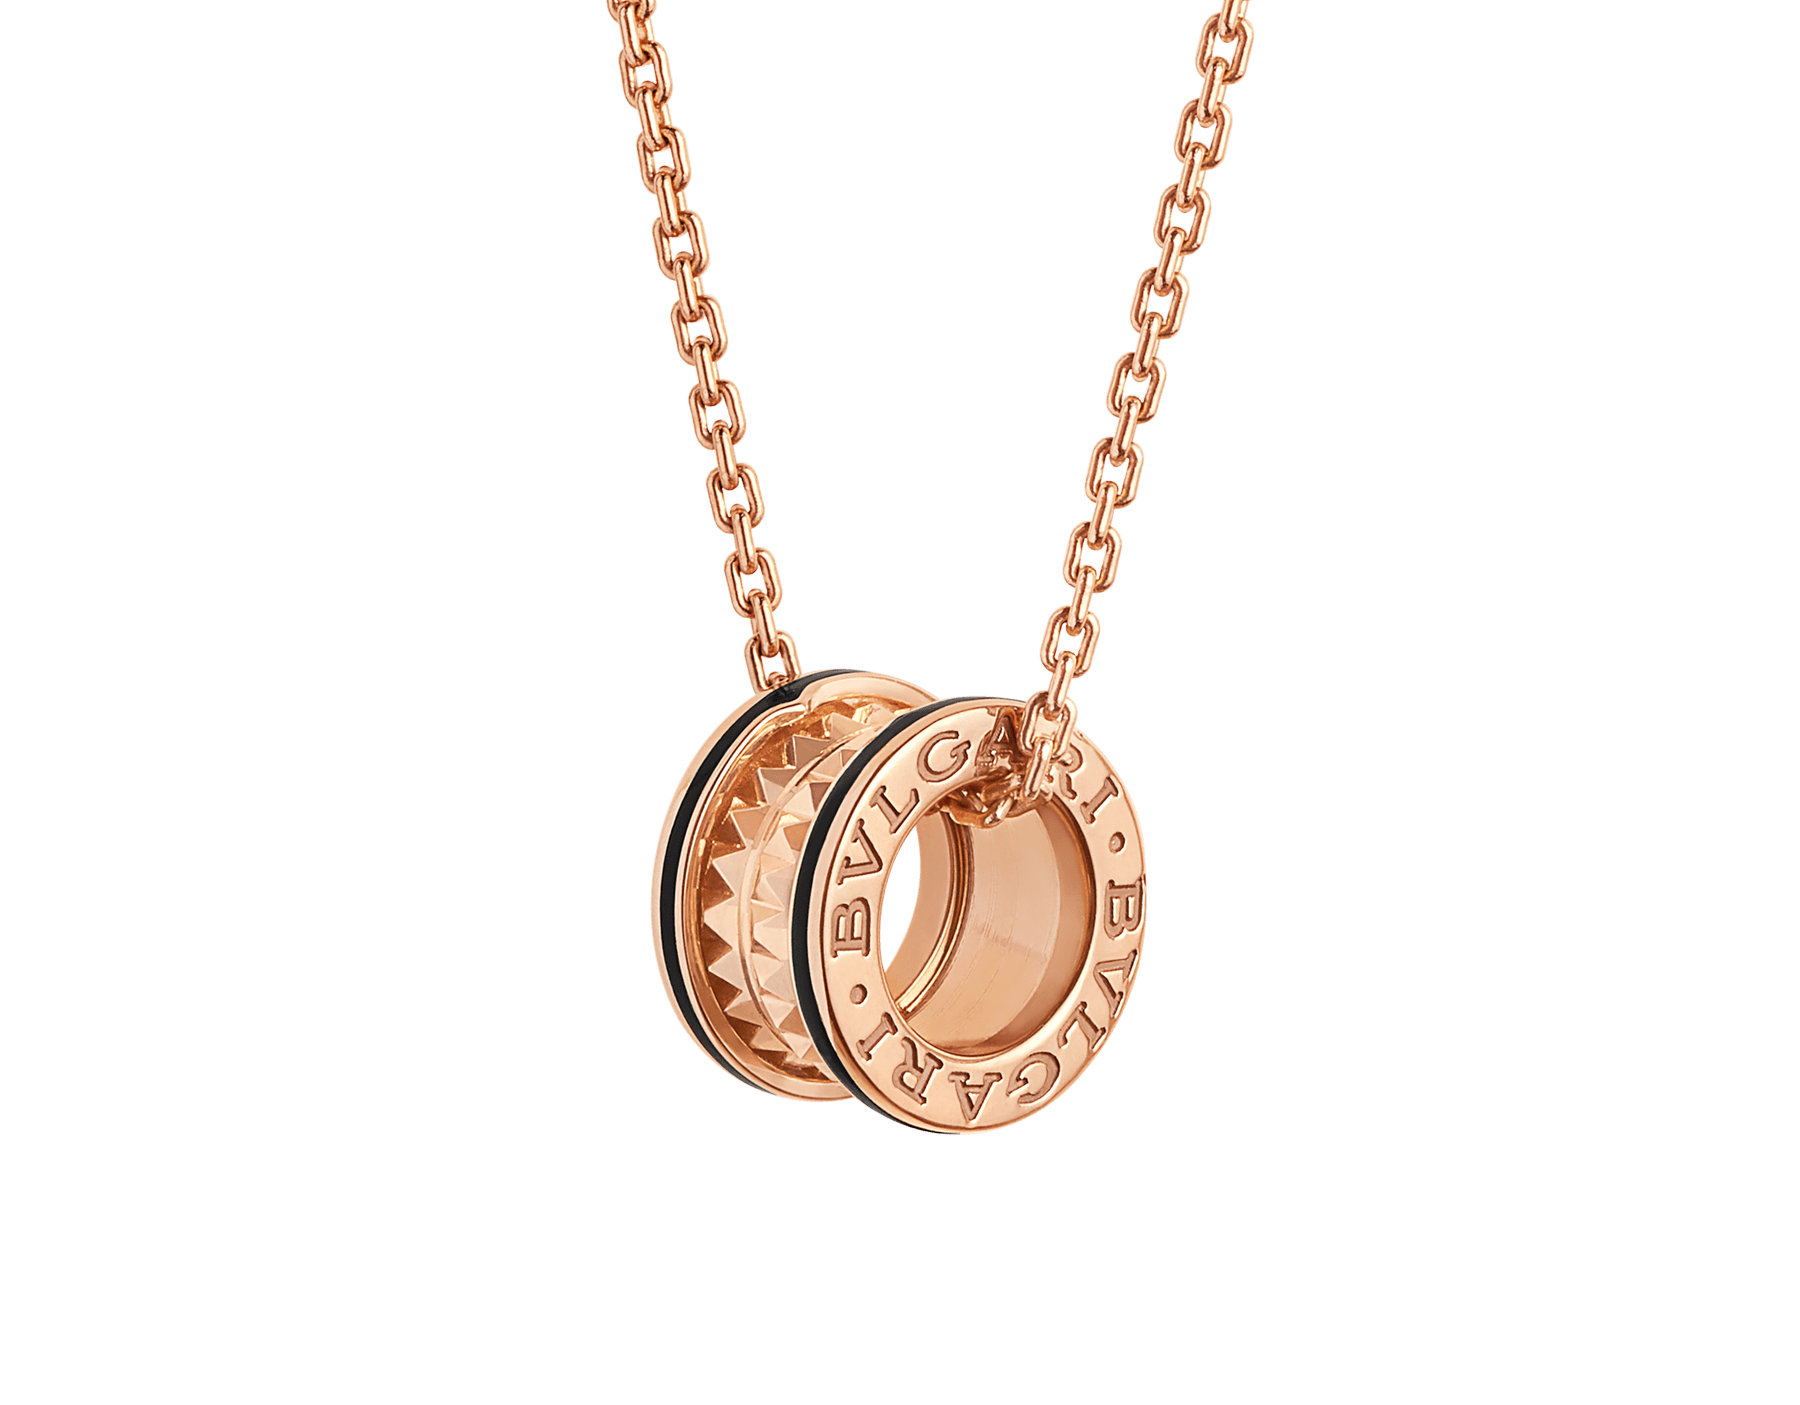 B.zero1 Rock necklace with 18 kt rose gold pendant with studded spiral, black ceramic inserts on the edges and 18 kt rose gold chain 358054 image 1